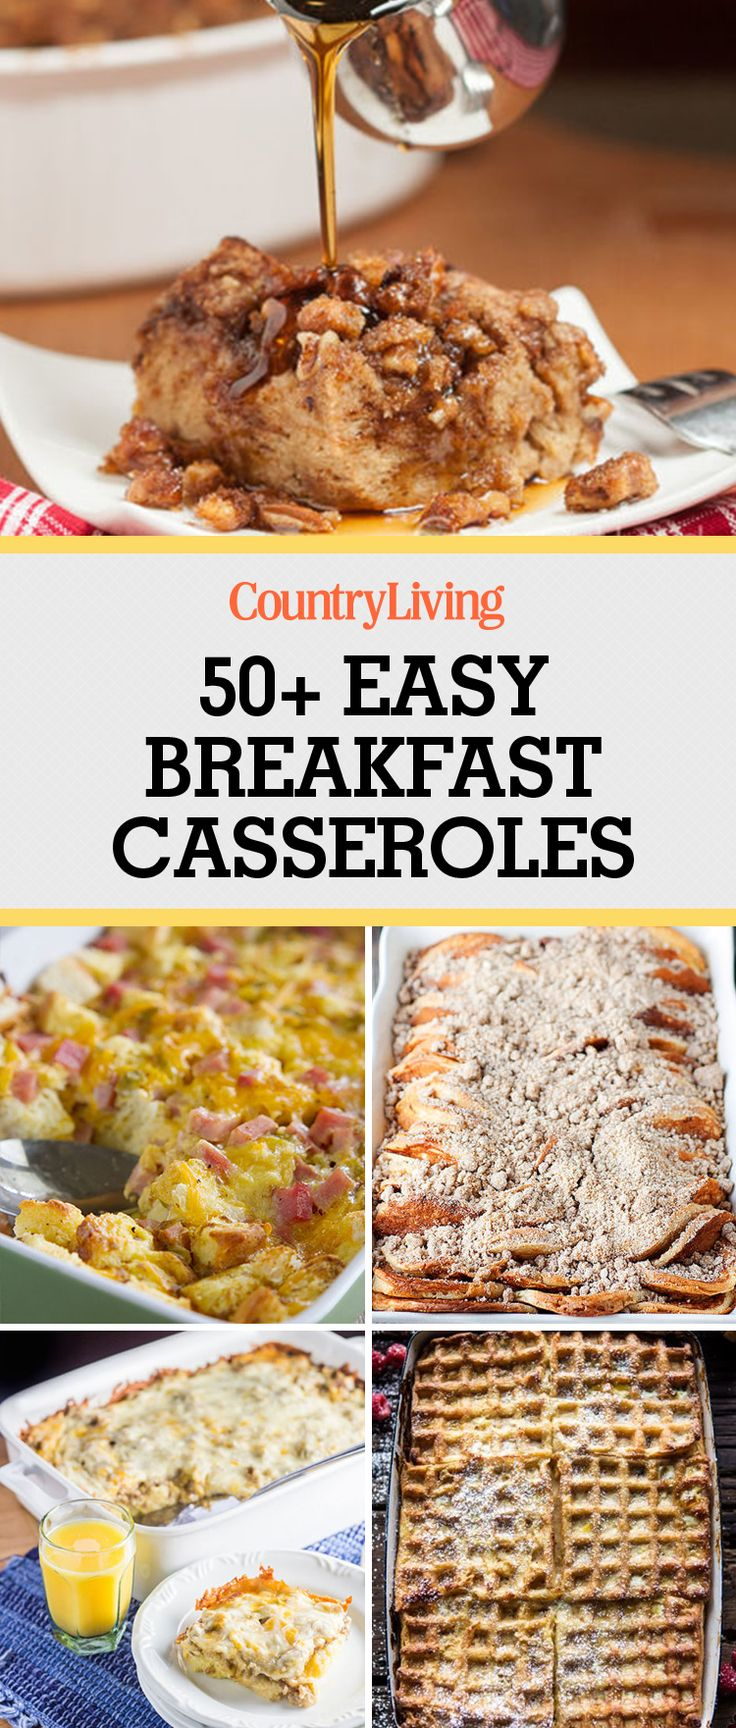 Don't forget to save these savory and sweet breakfast ideas. For more delicious recipes, follow @countryliving on Pinterest.